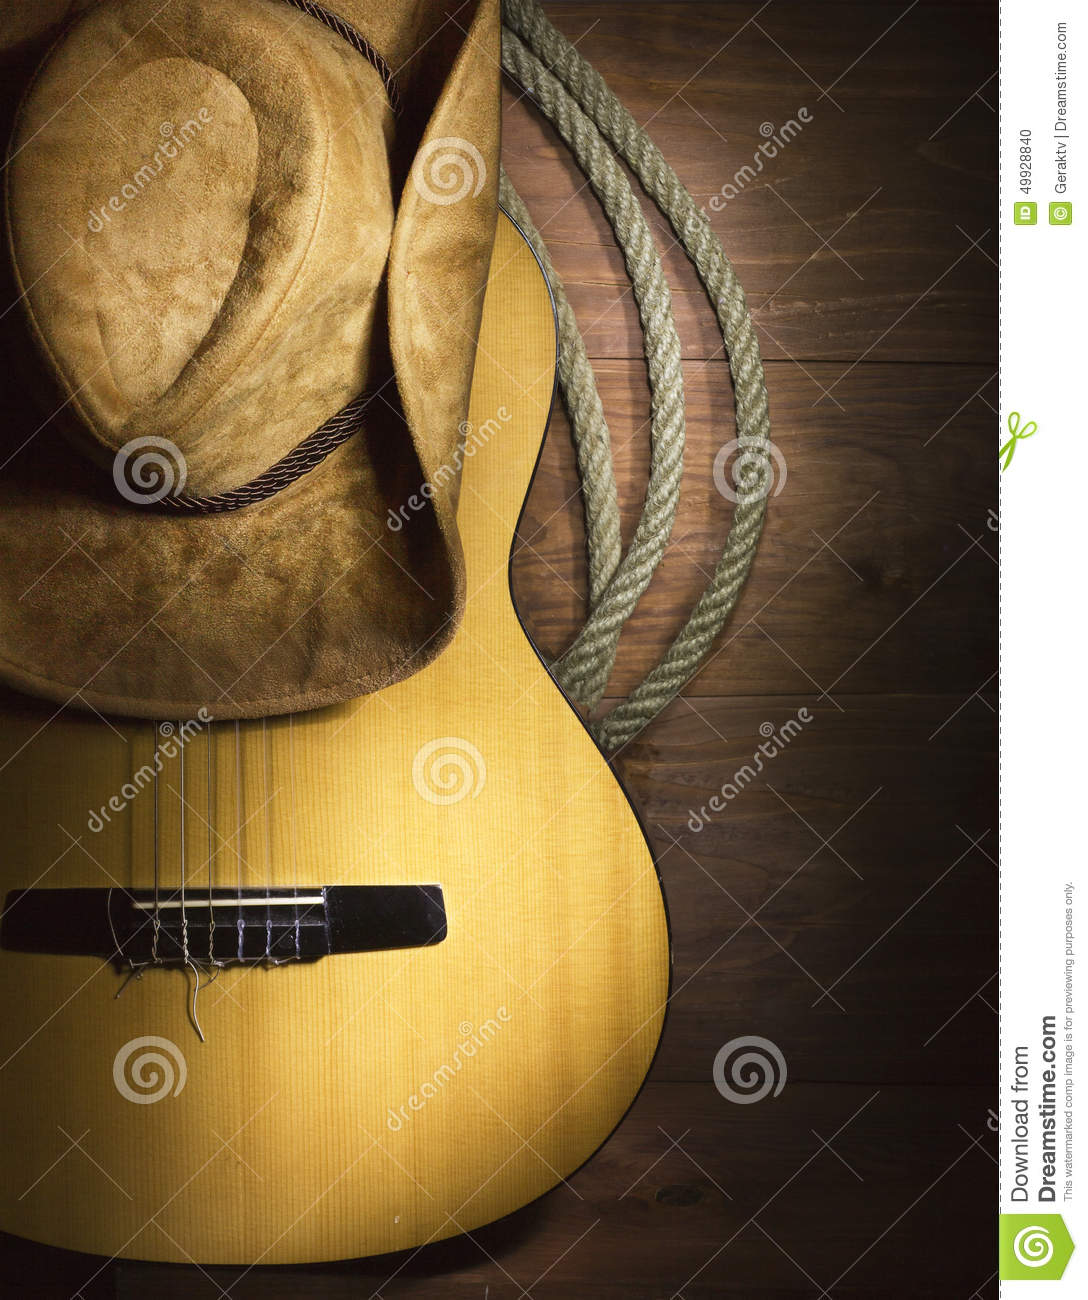 country music with guitar on wood background stock photo image 49928840. Black Bedroom Furniture Sets. Home Design Ideas